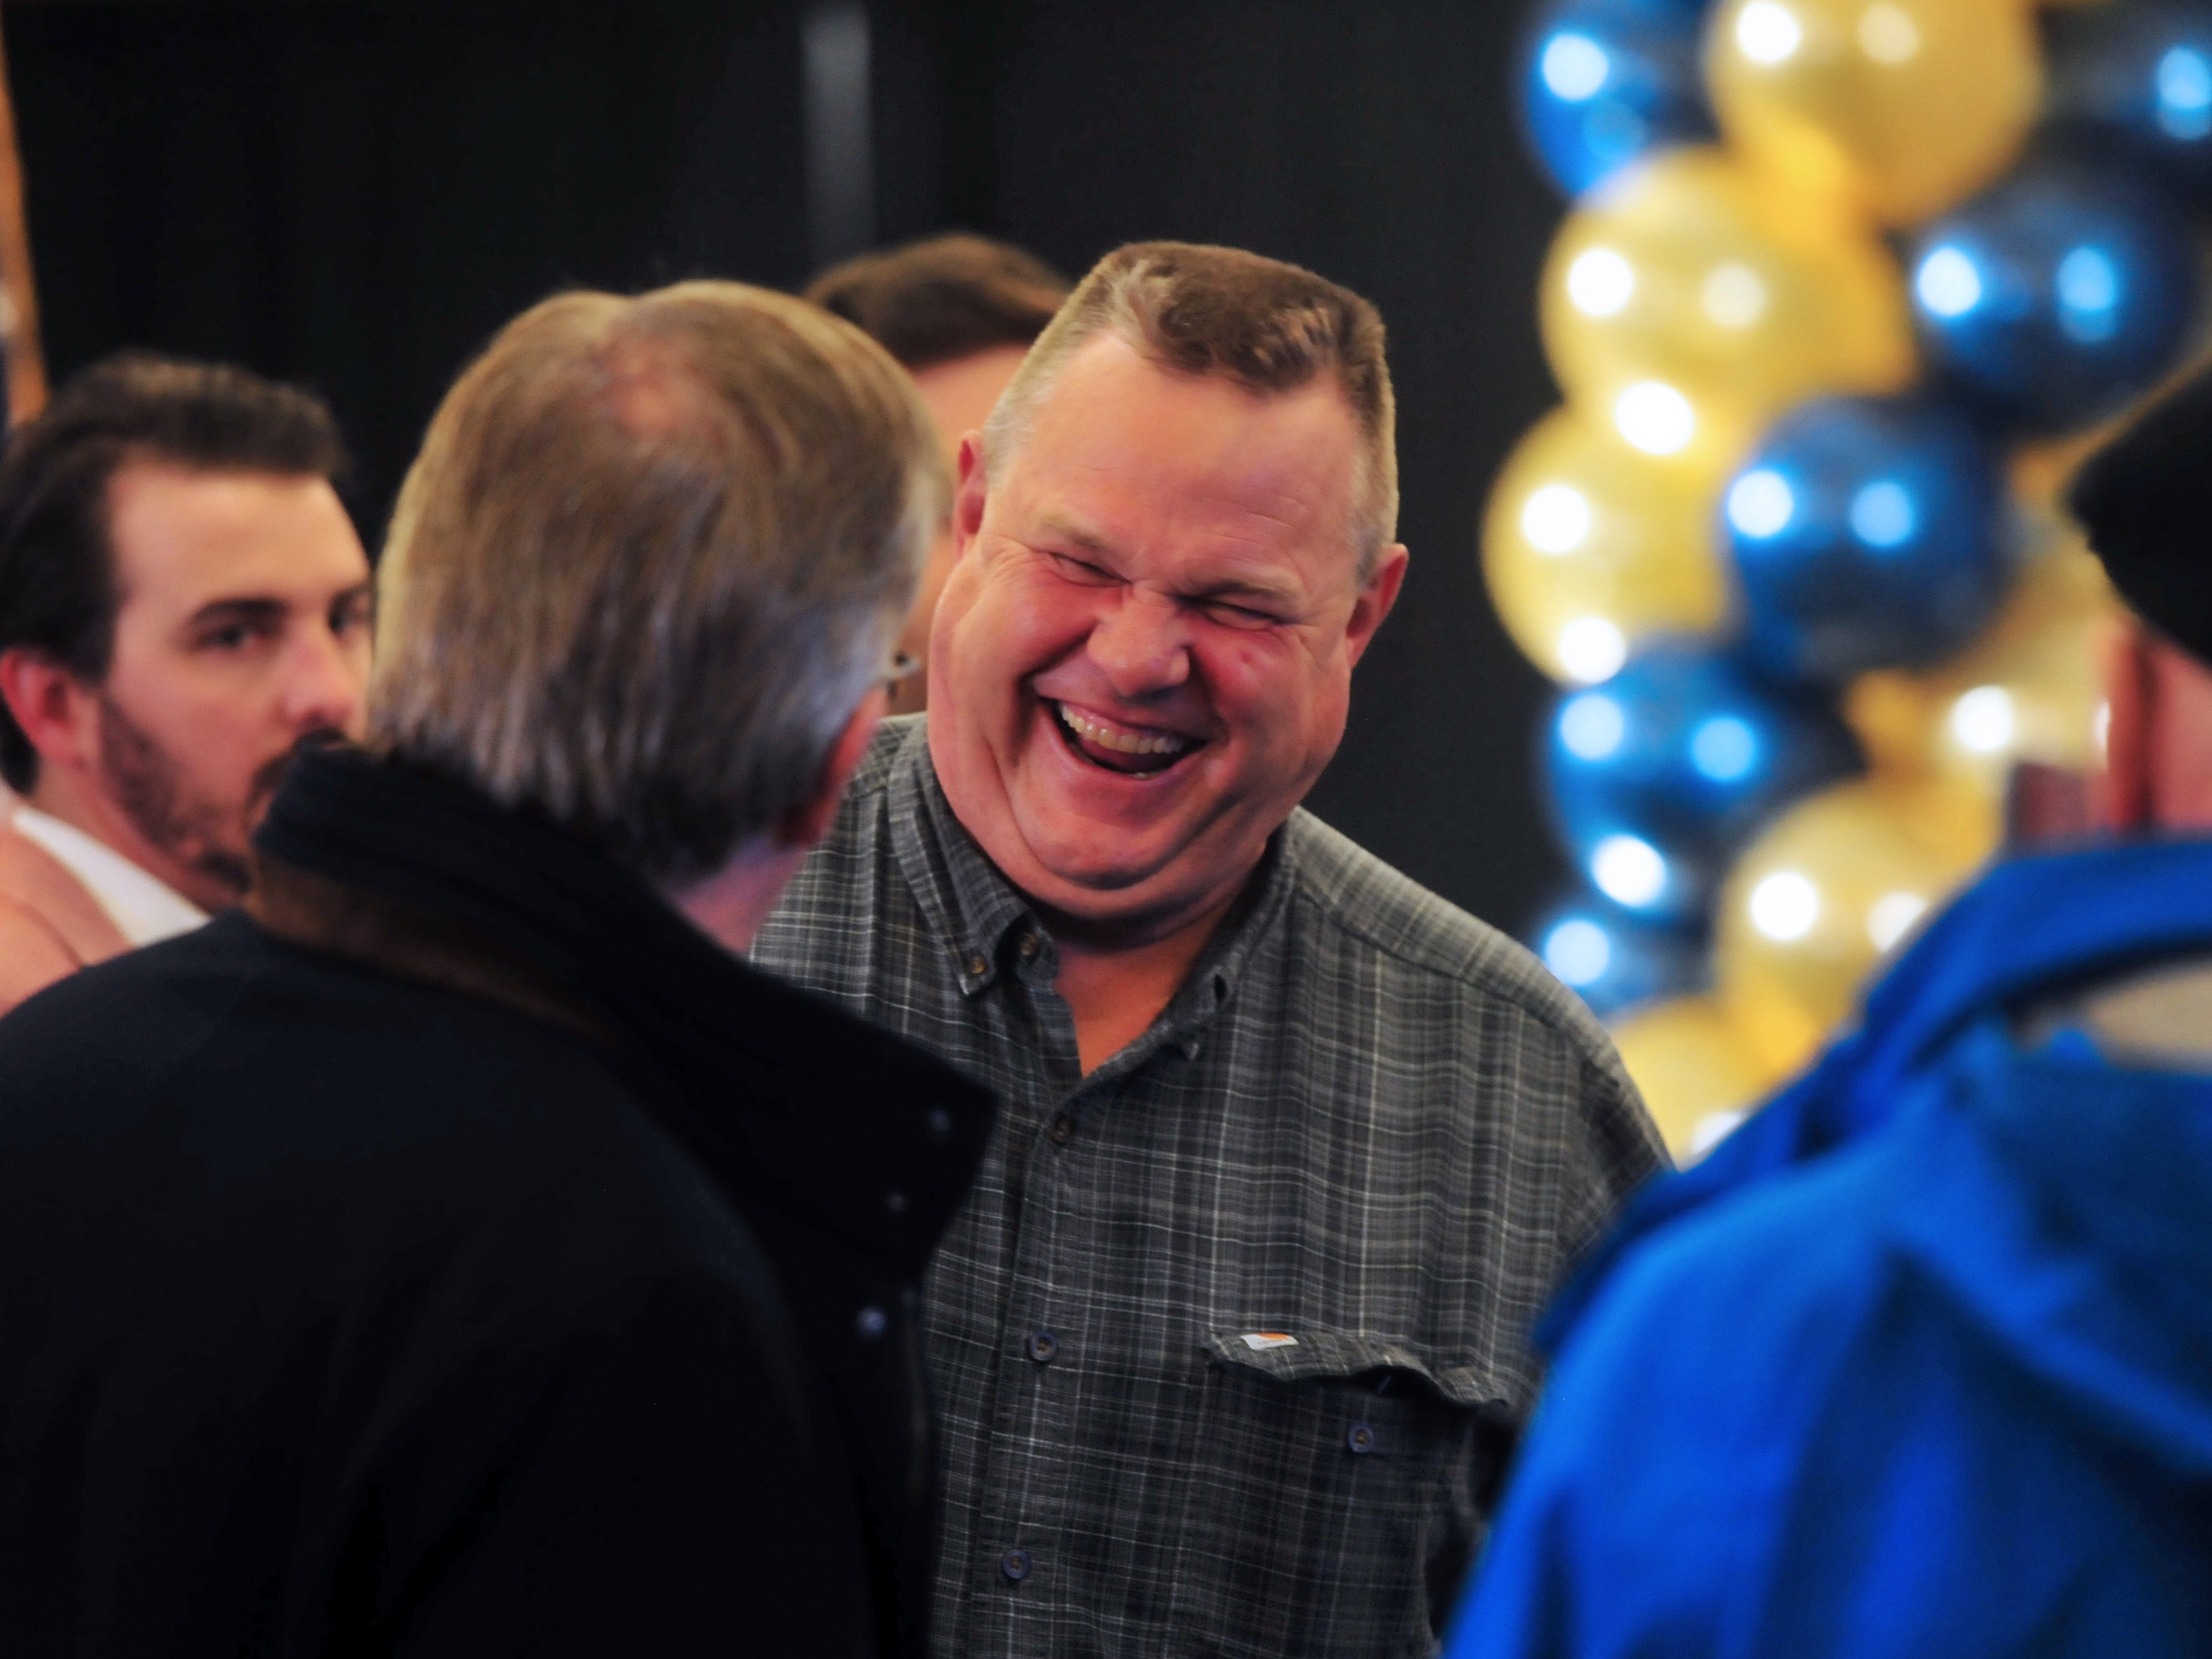 Sen.  Jon Tester, D-Mont., mingles with supporters early in the evening, Nov. 6, 2018, during his election night party at the Holiday Inn in Great Falls.